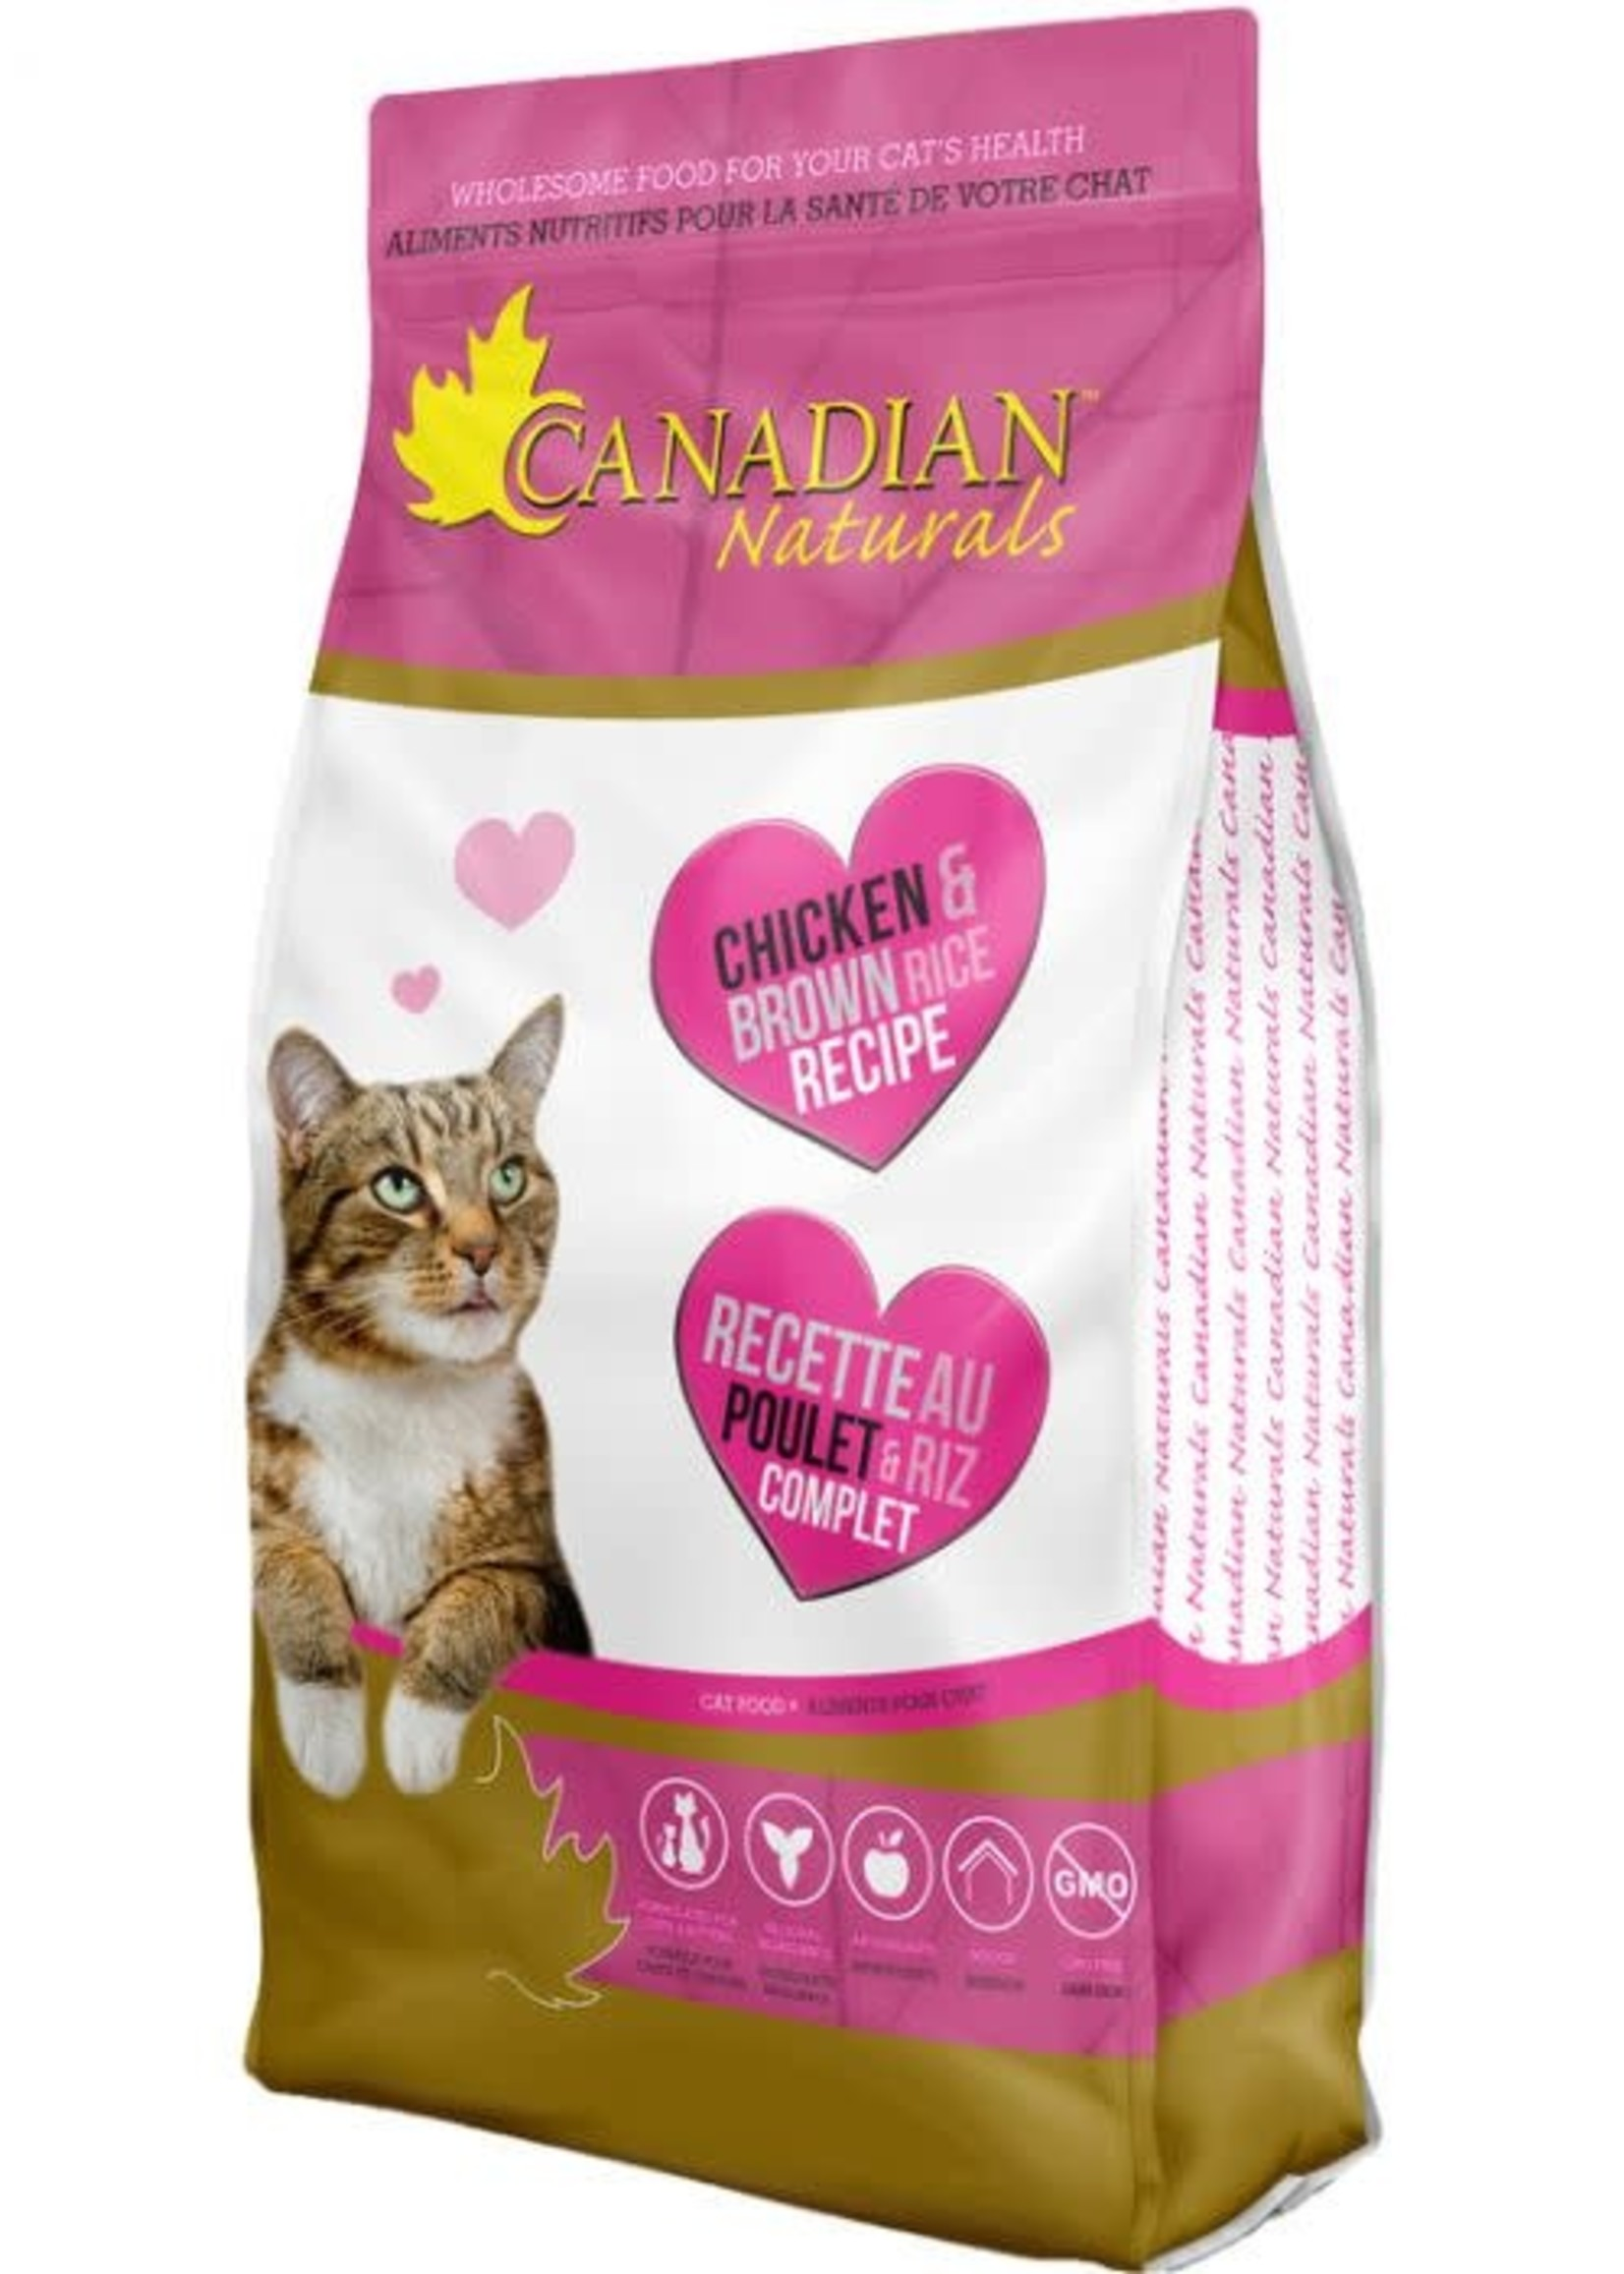 Canadian Naturals® CANADIAN NATURALS CHICKEN & BROWN RICE RECIPE 6.5lbs